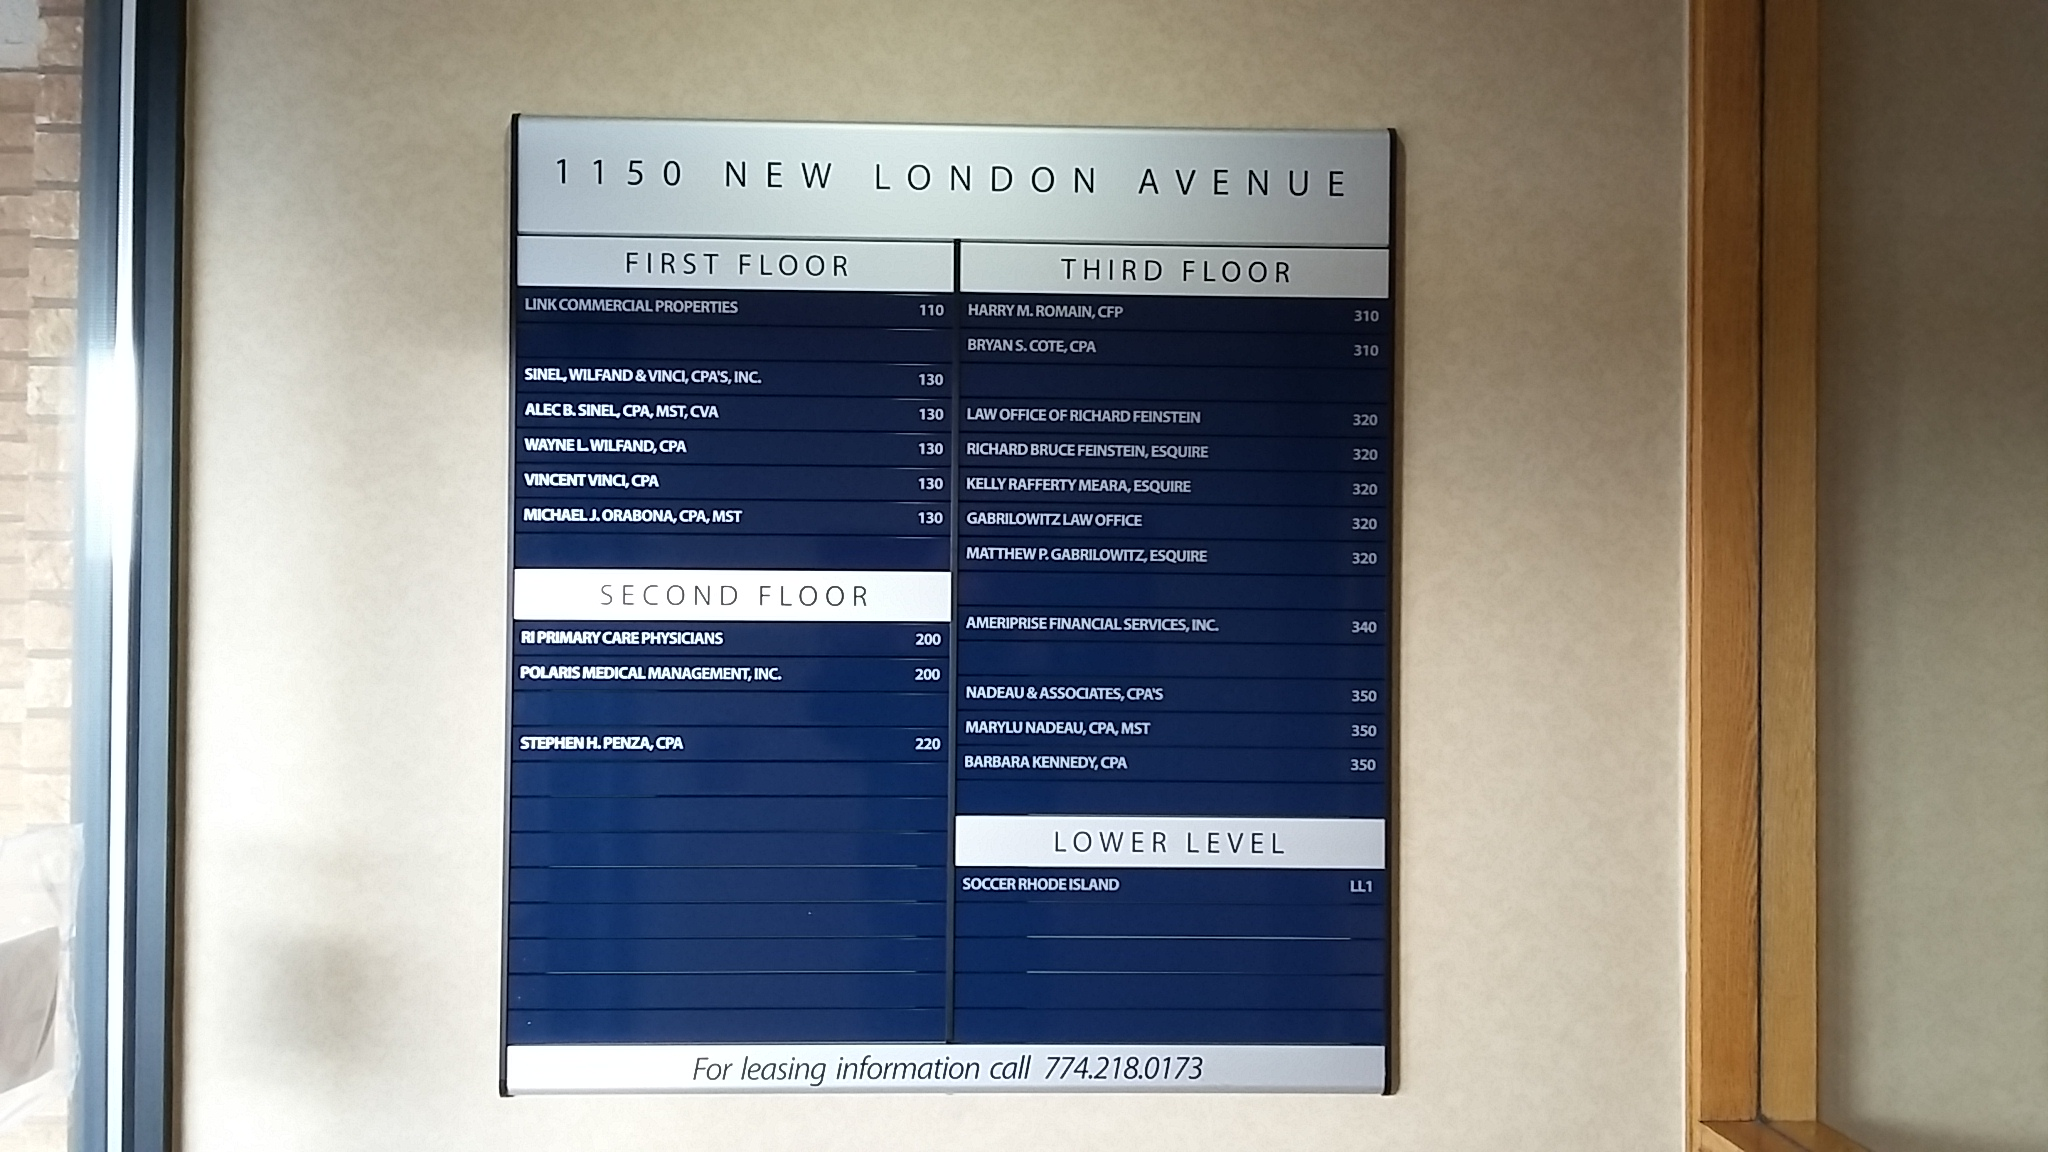 new london directory